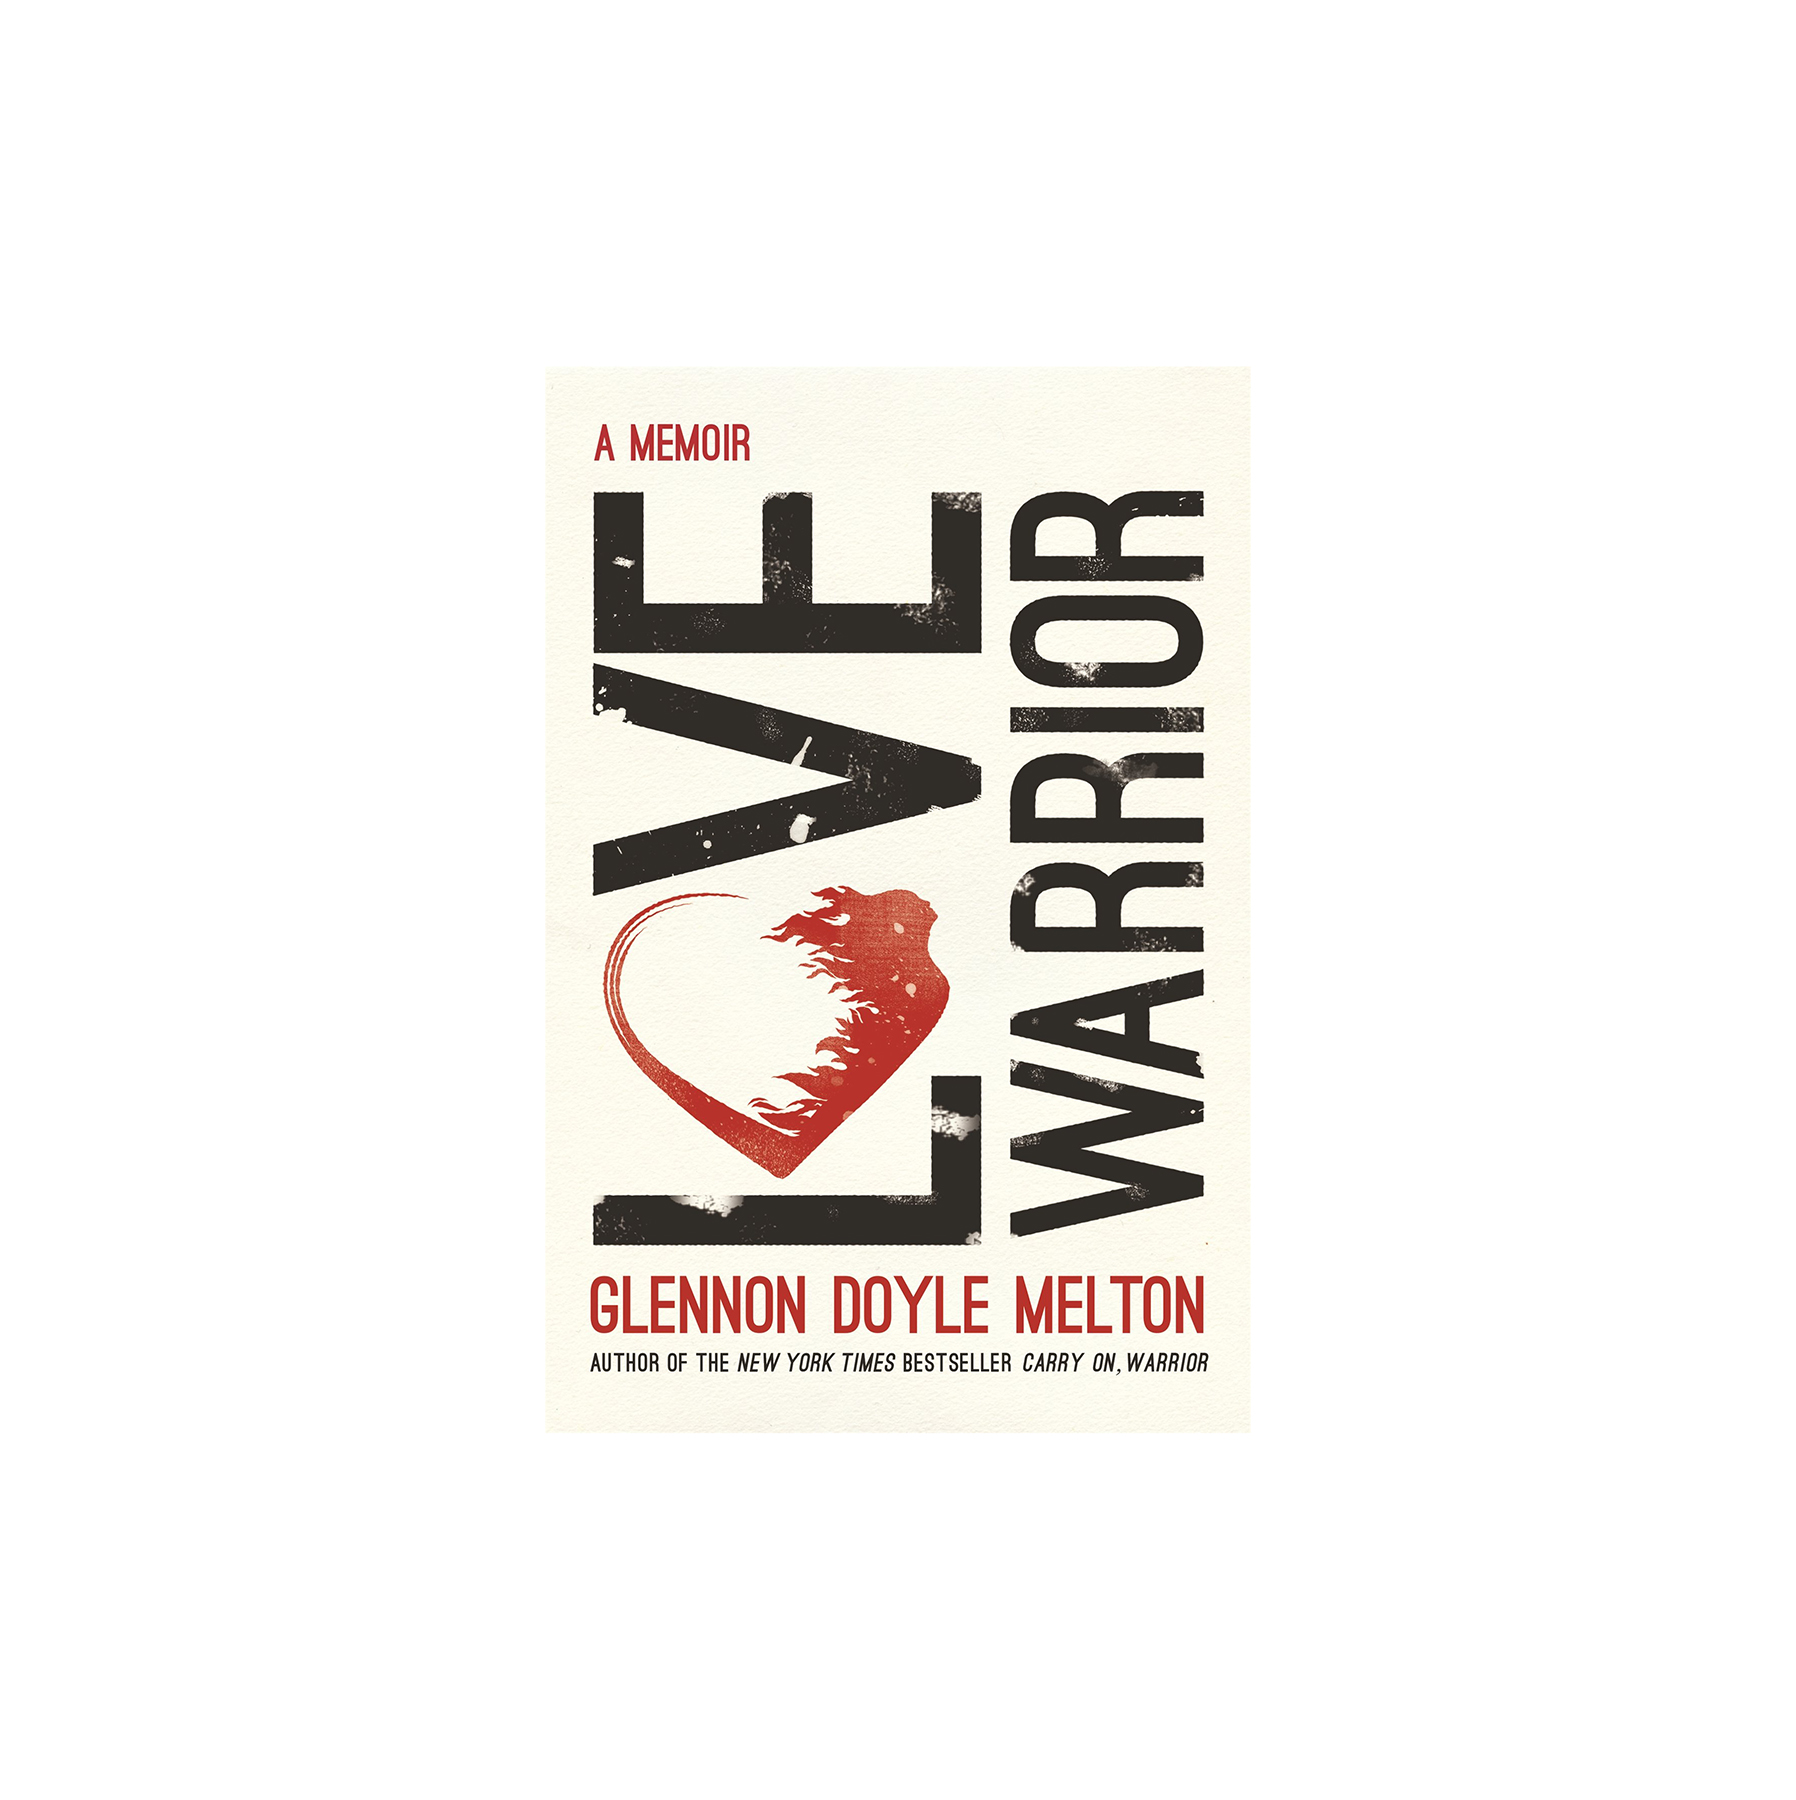 Love Warrior: A Memoir, by Glennon Doyle Melton